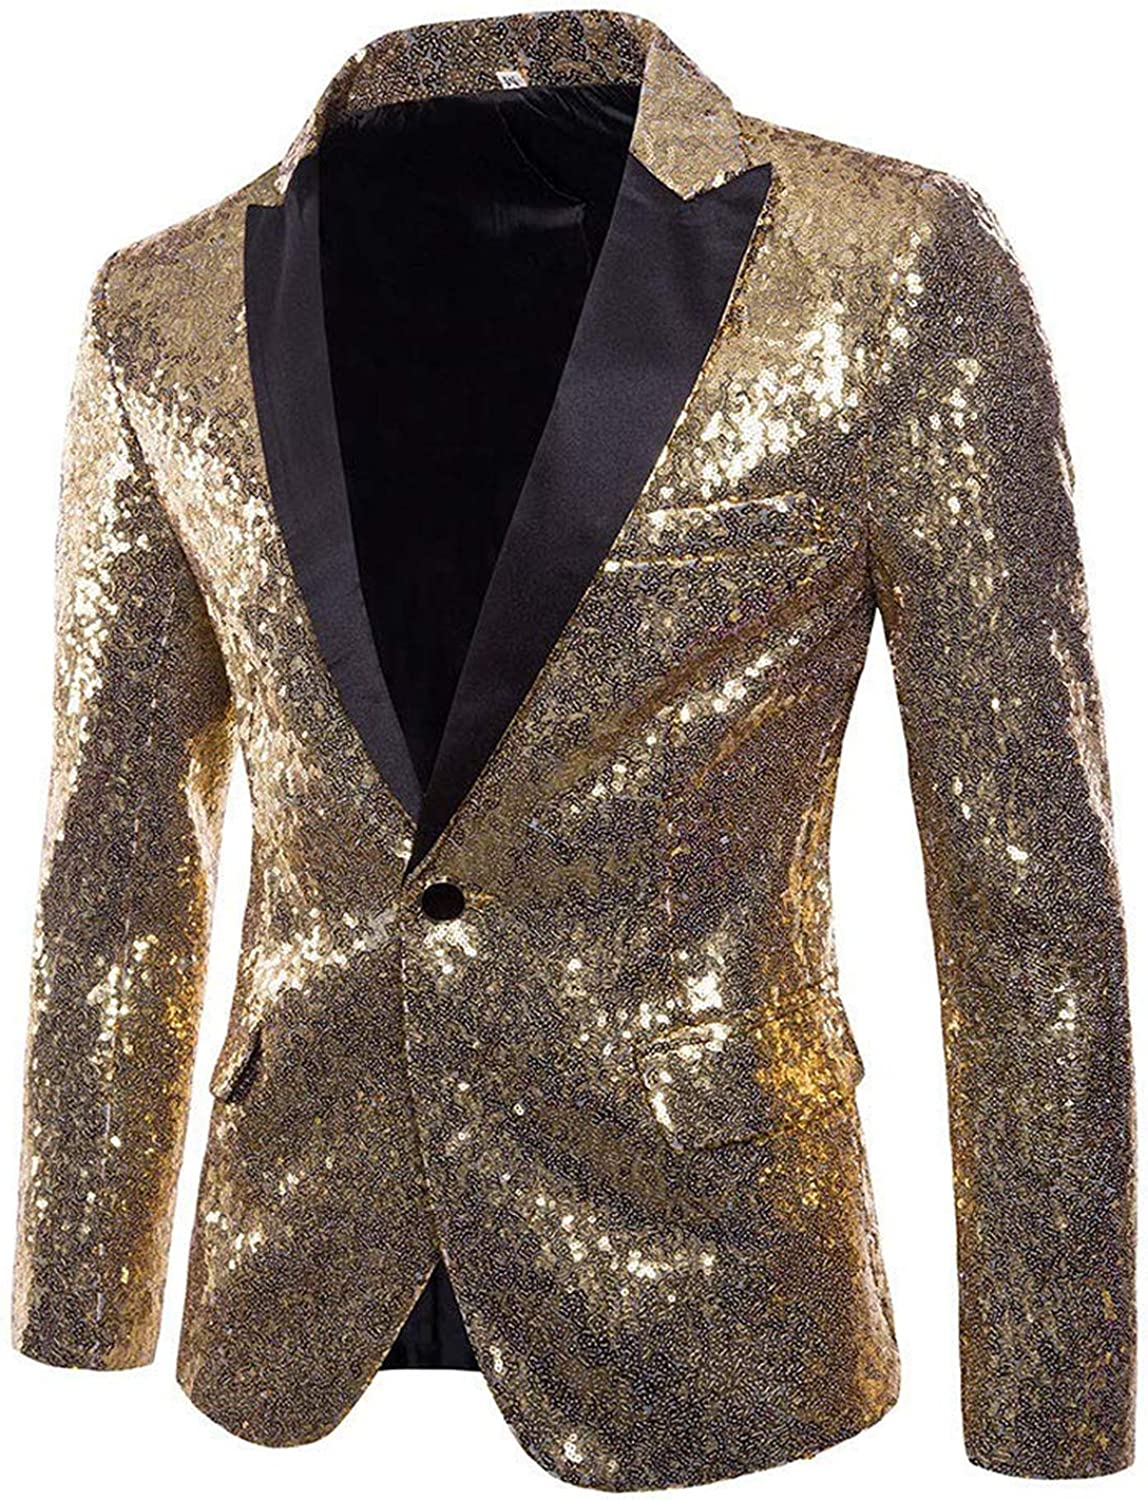 Everbeauty Sequins Jackets Mens Shiny Blazer One Button Tuxedo for Party Stylish Formal Dinner Jacket EJK034